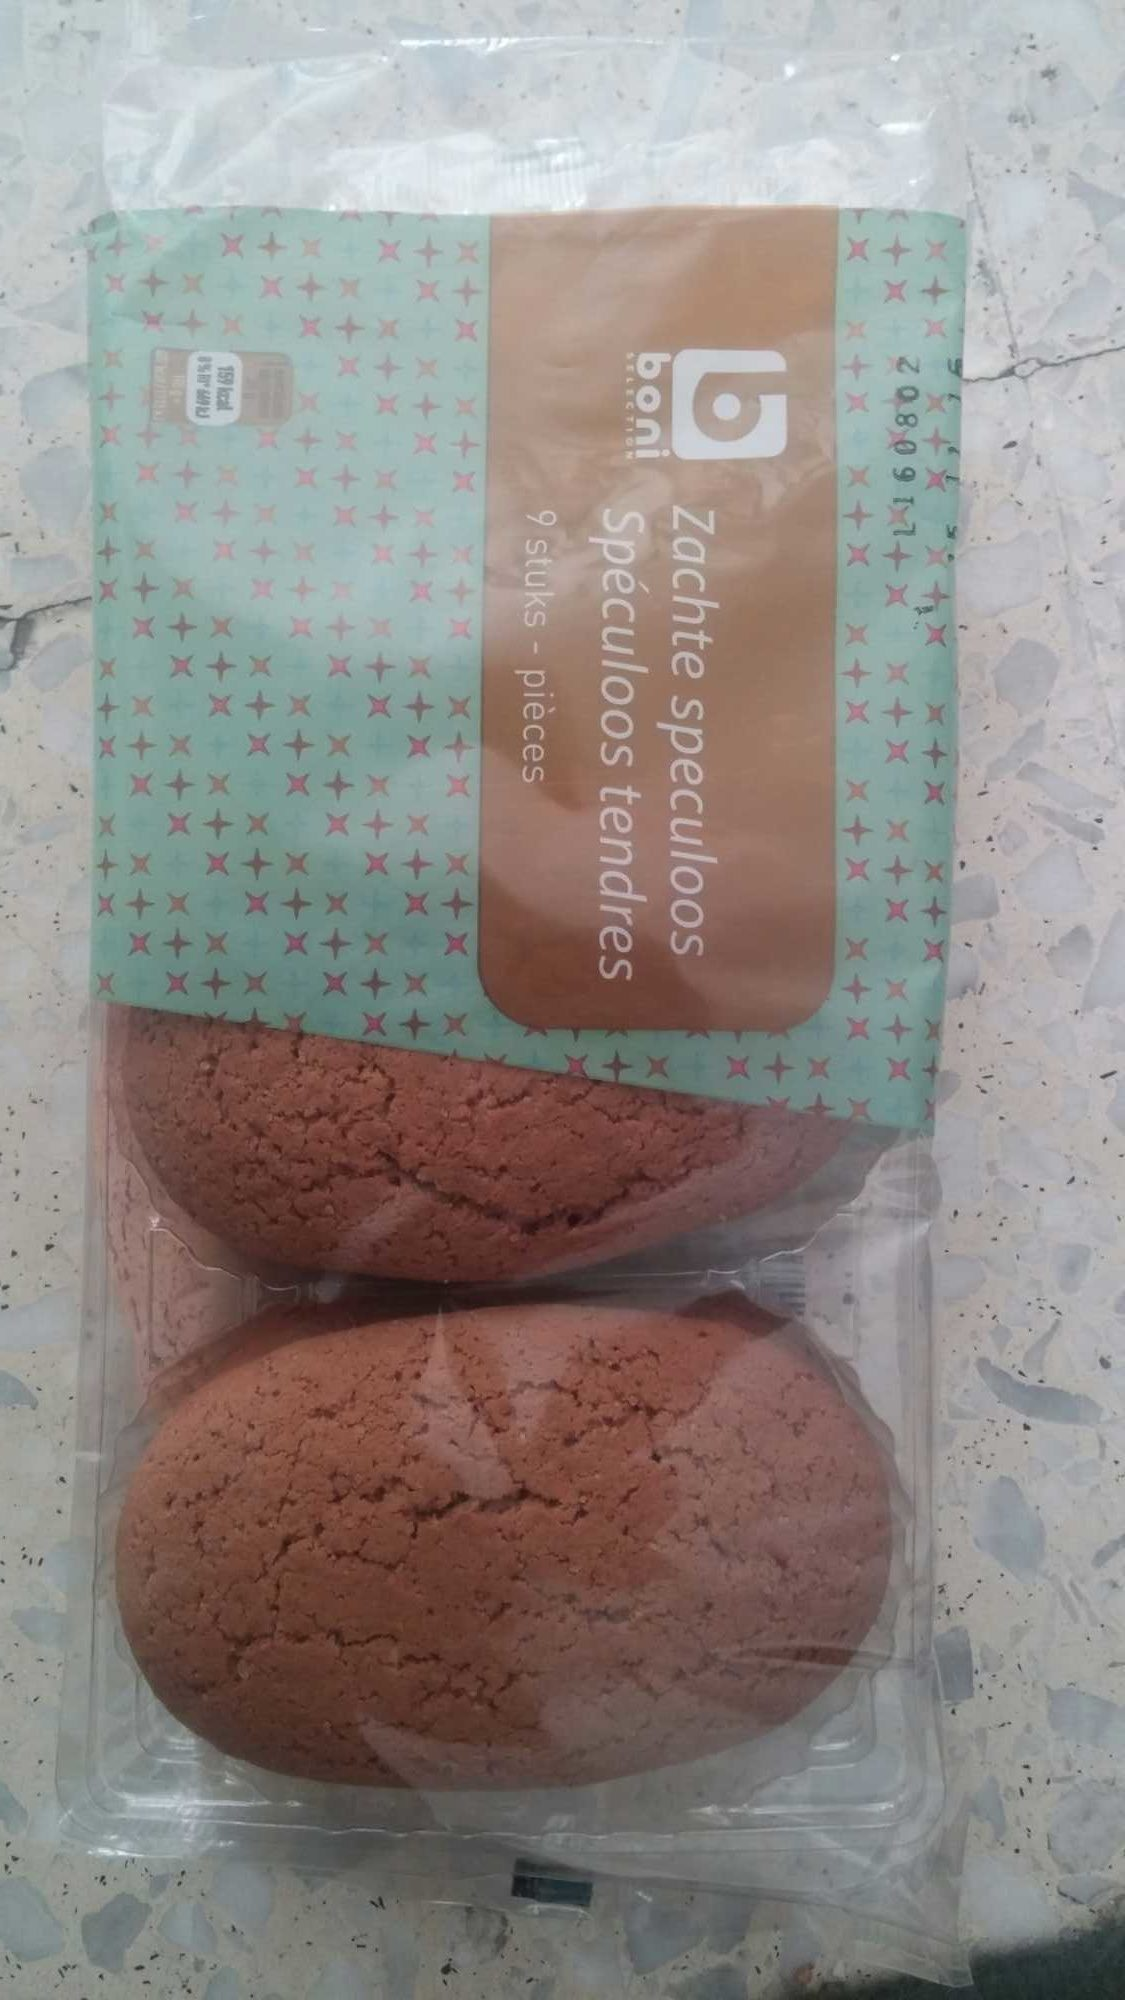 Speculoos tendres - Product